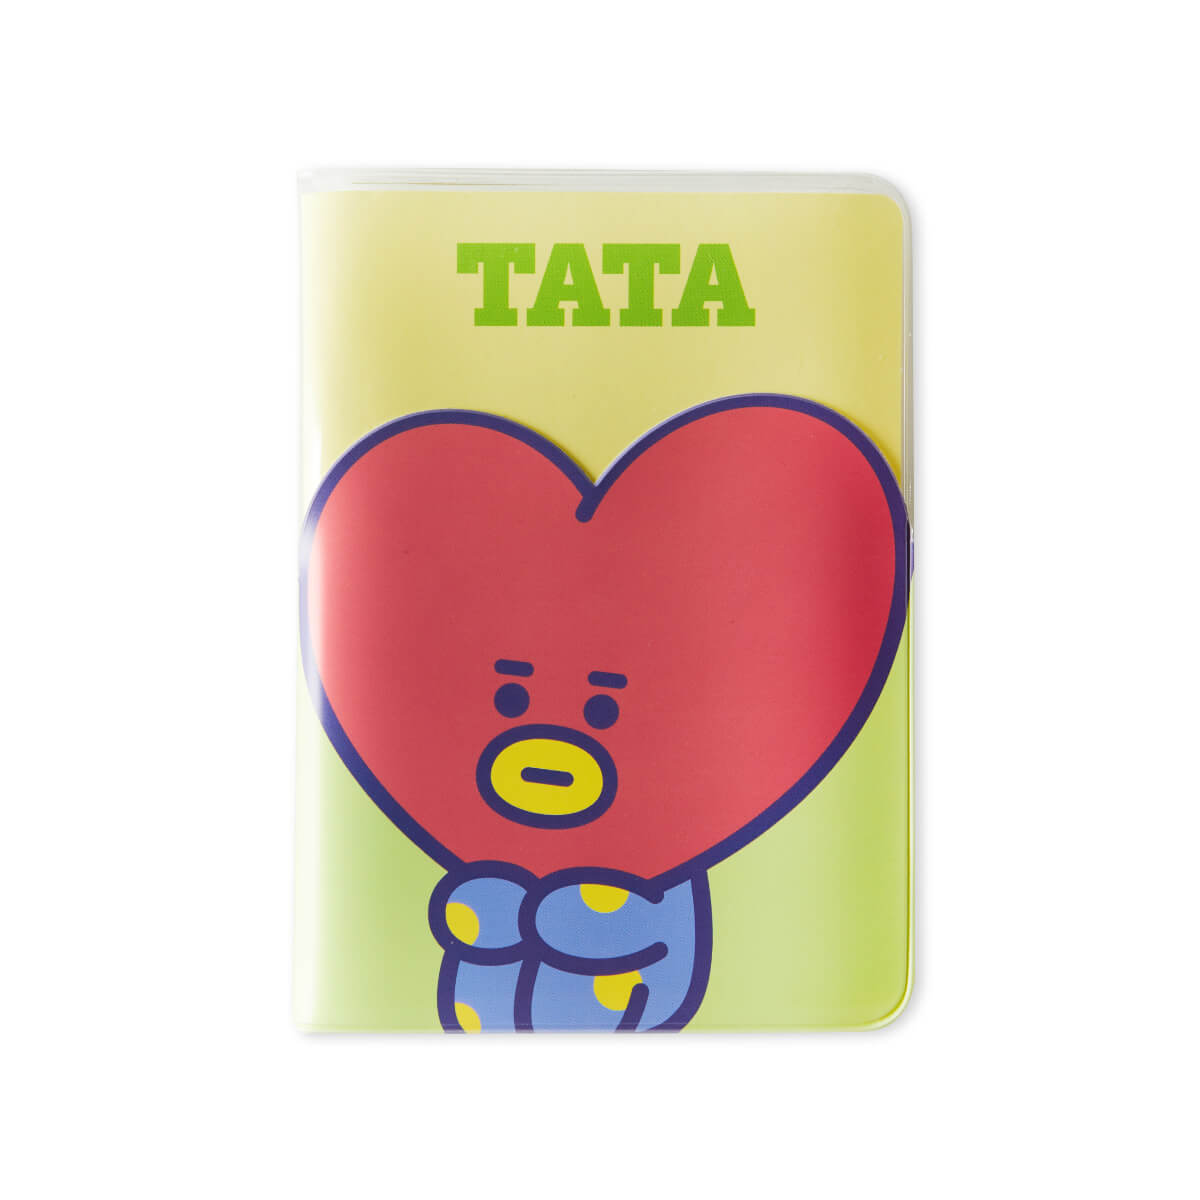 BT21 TATA Colorful Clear Passport Case